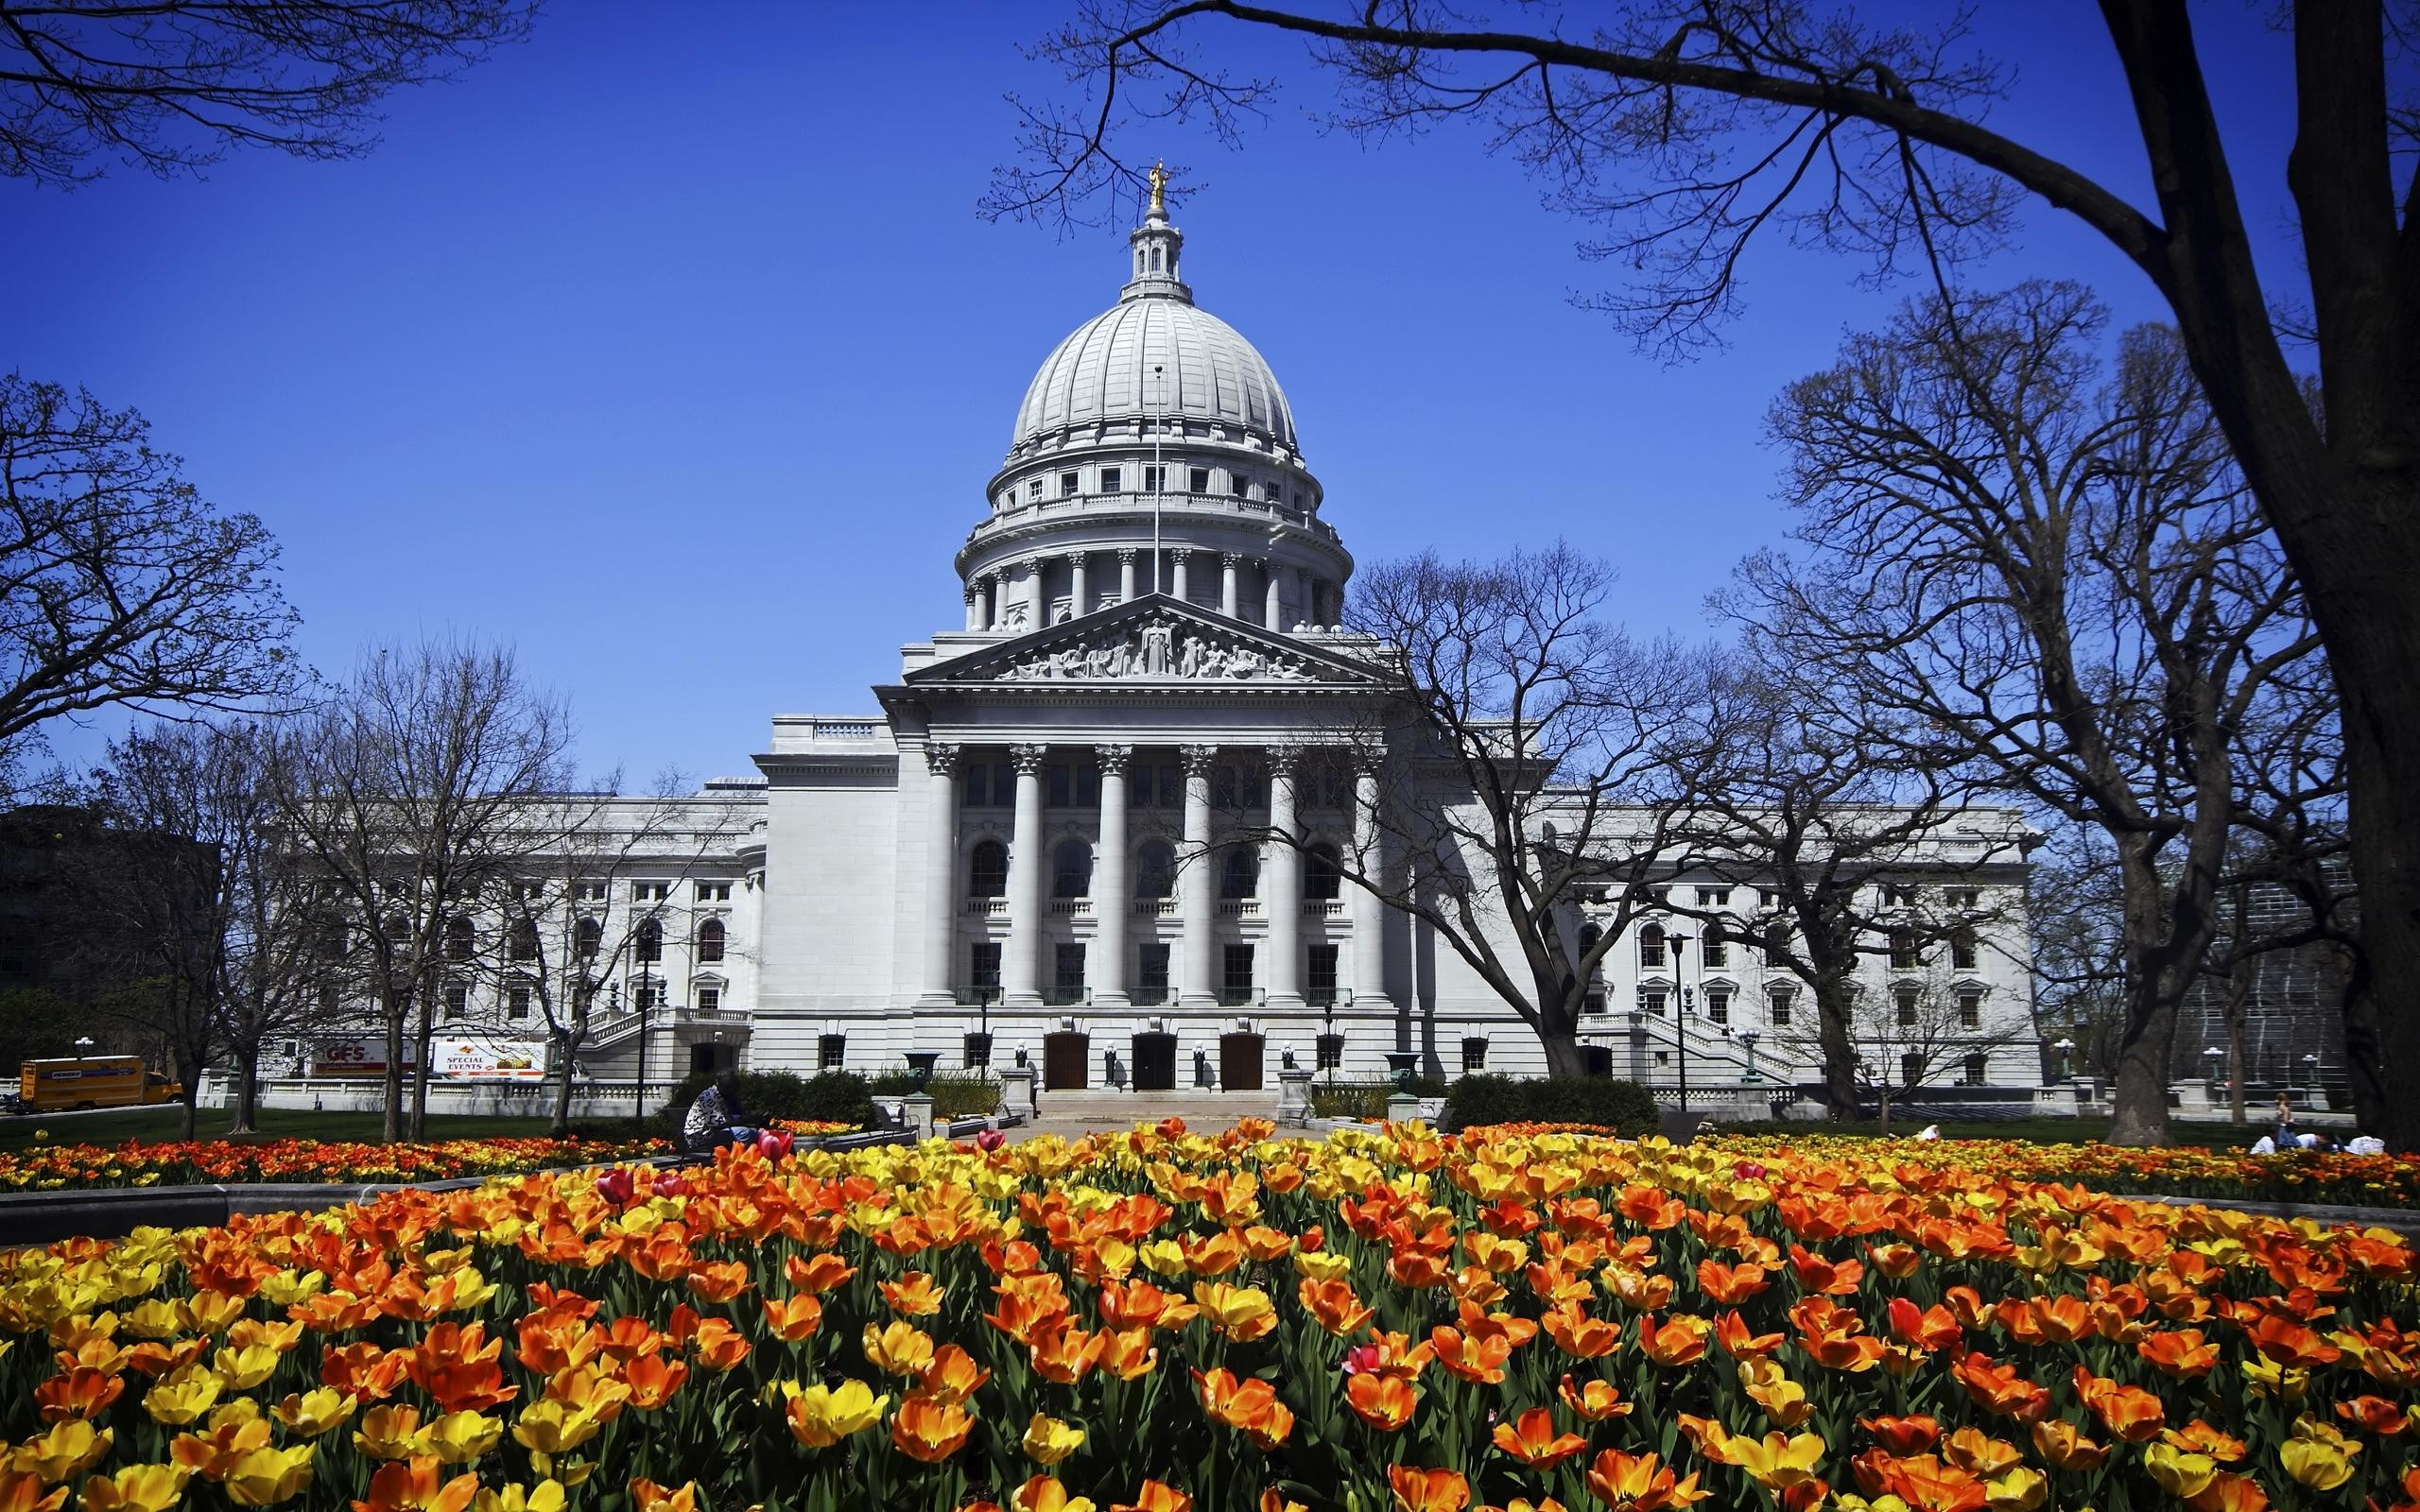 1280×800 1440×900 1680×1050 1920×1200 2560×1600. A Madison Spring Day – spring  wallpaper